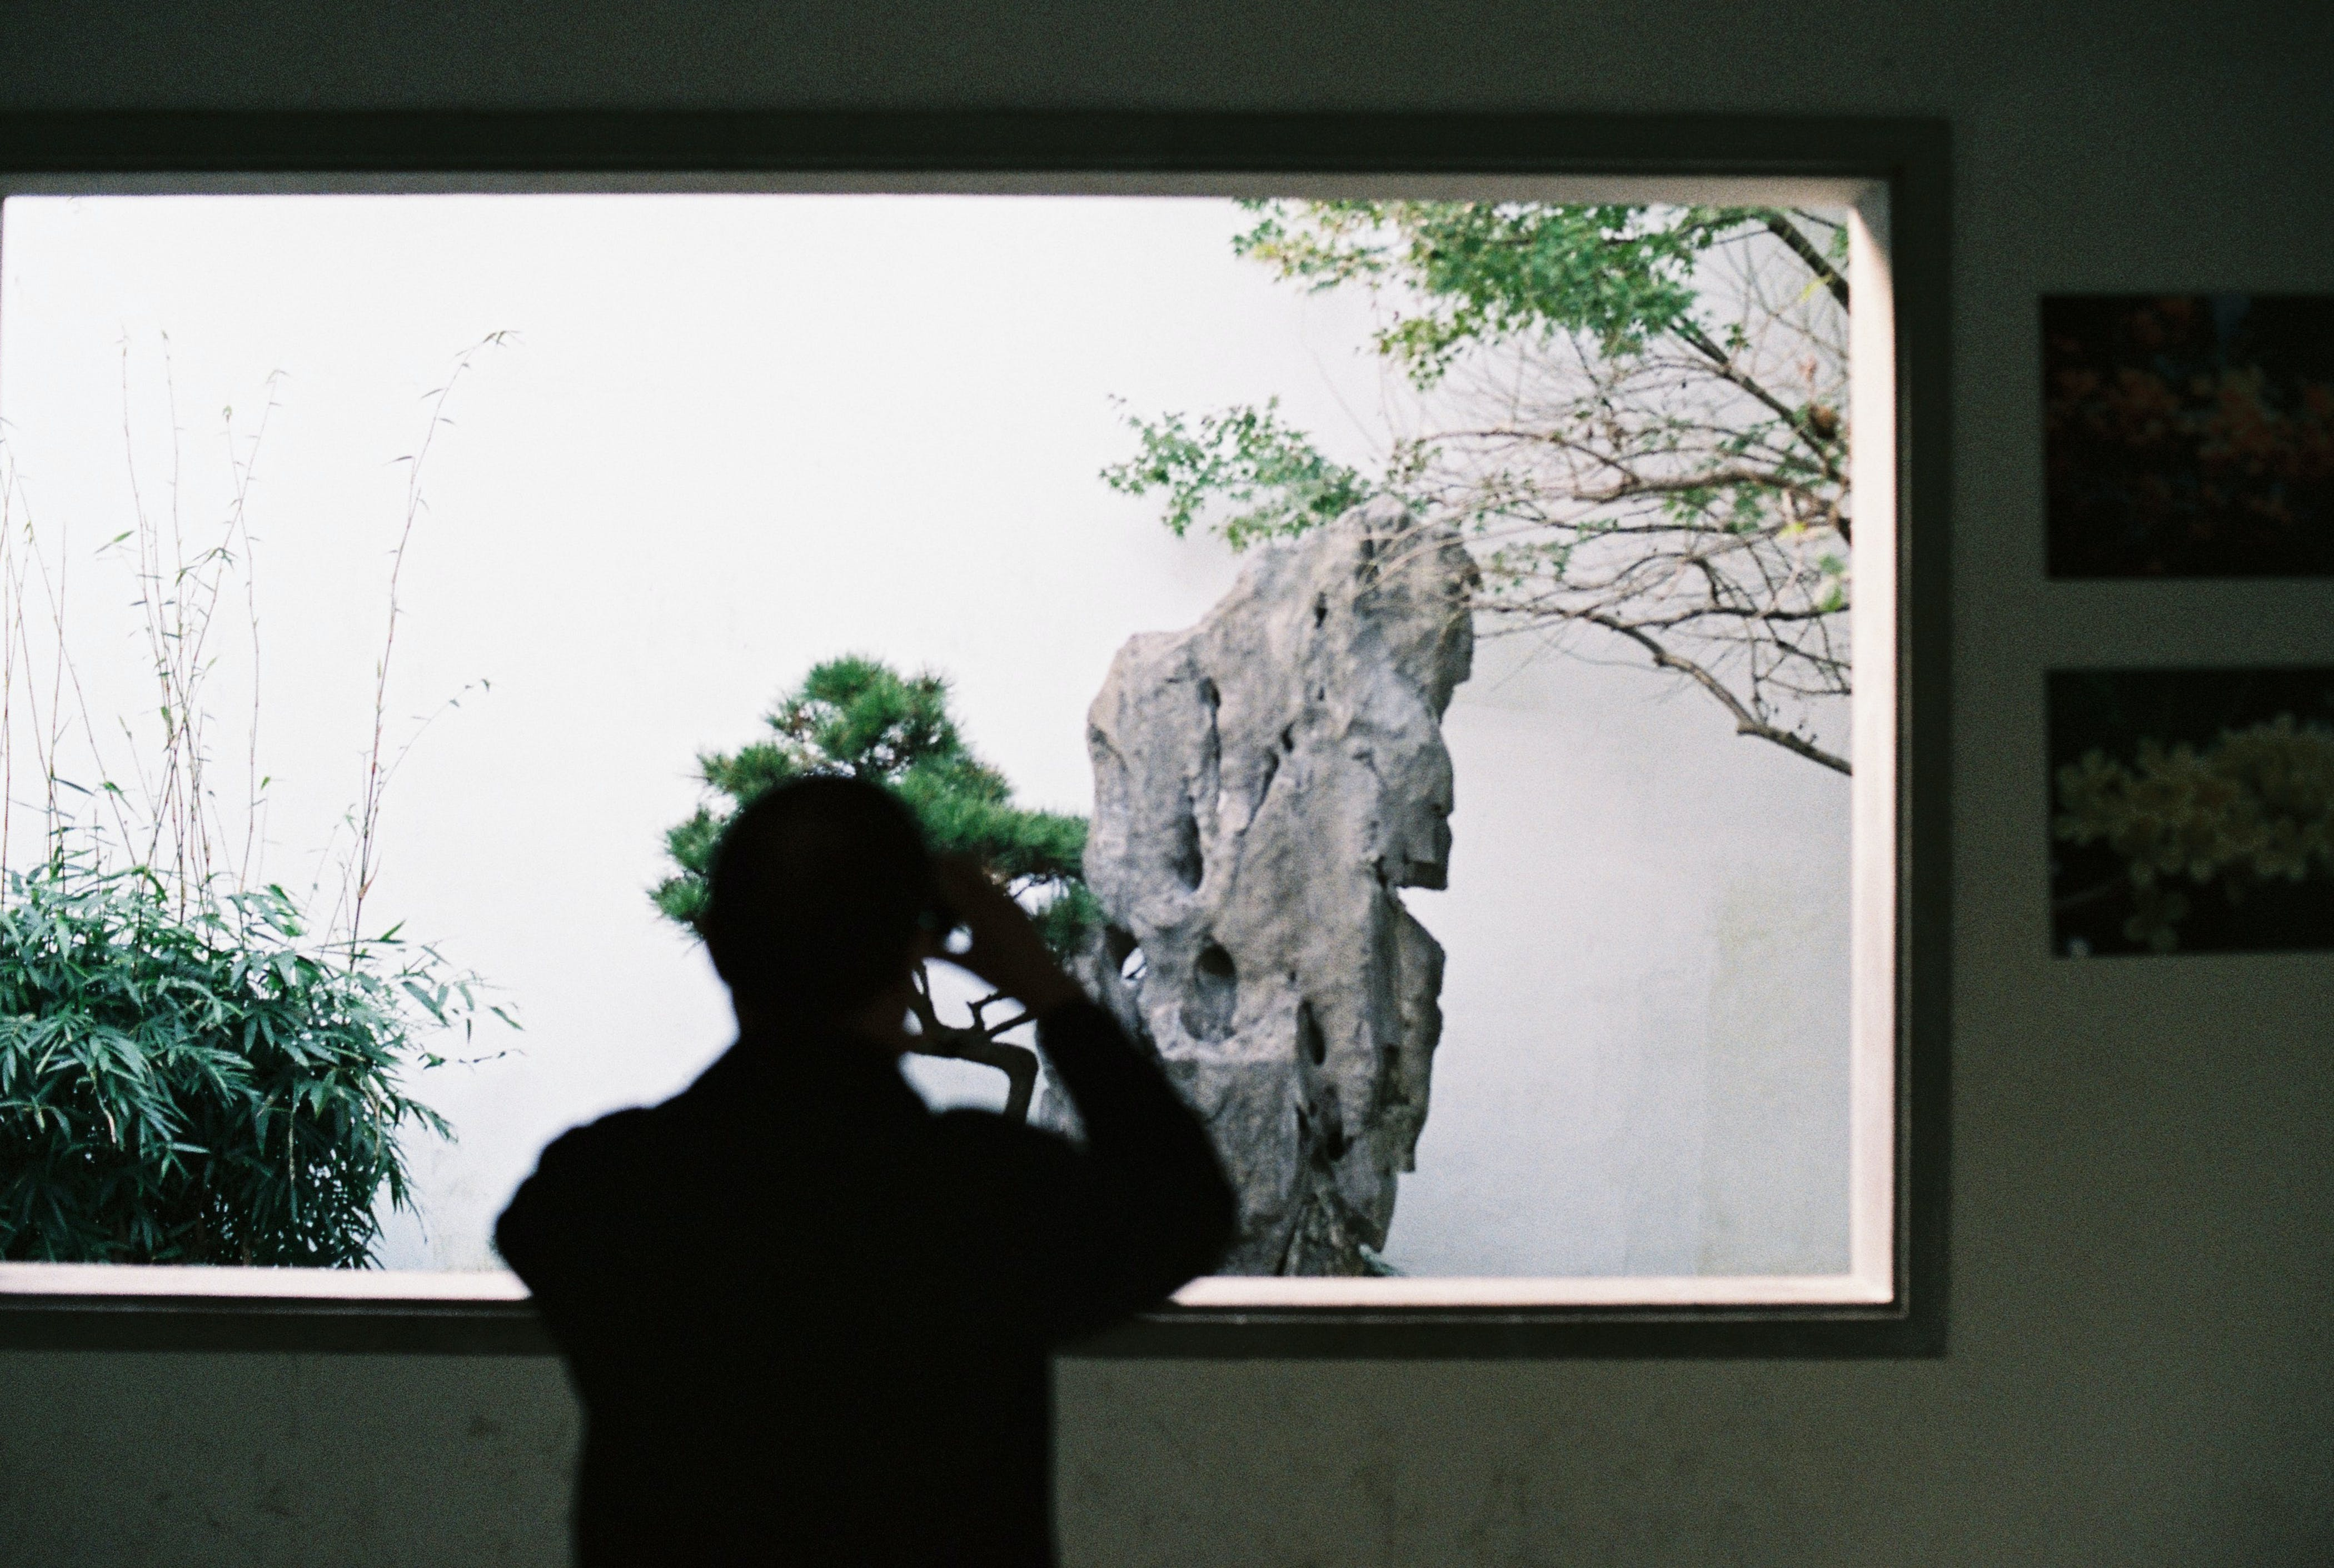 Person Taking Photo of Rock Formation